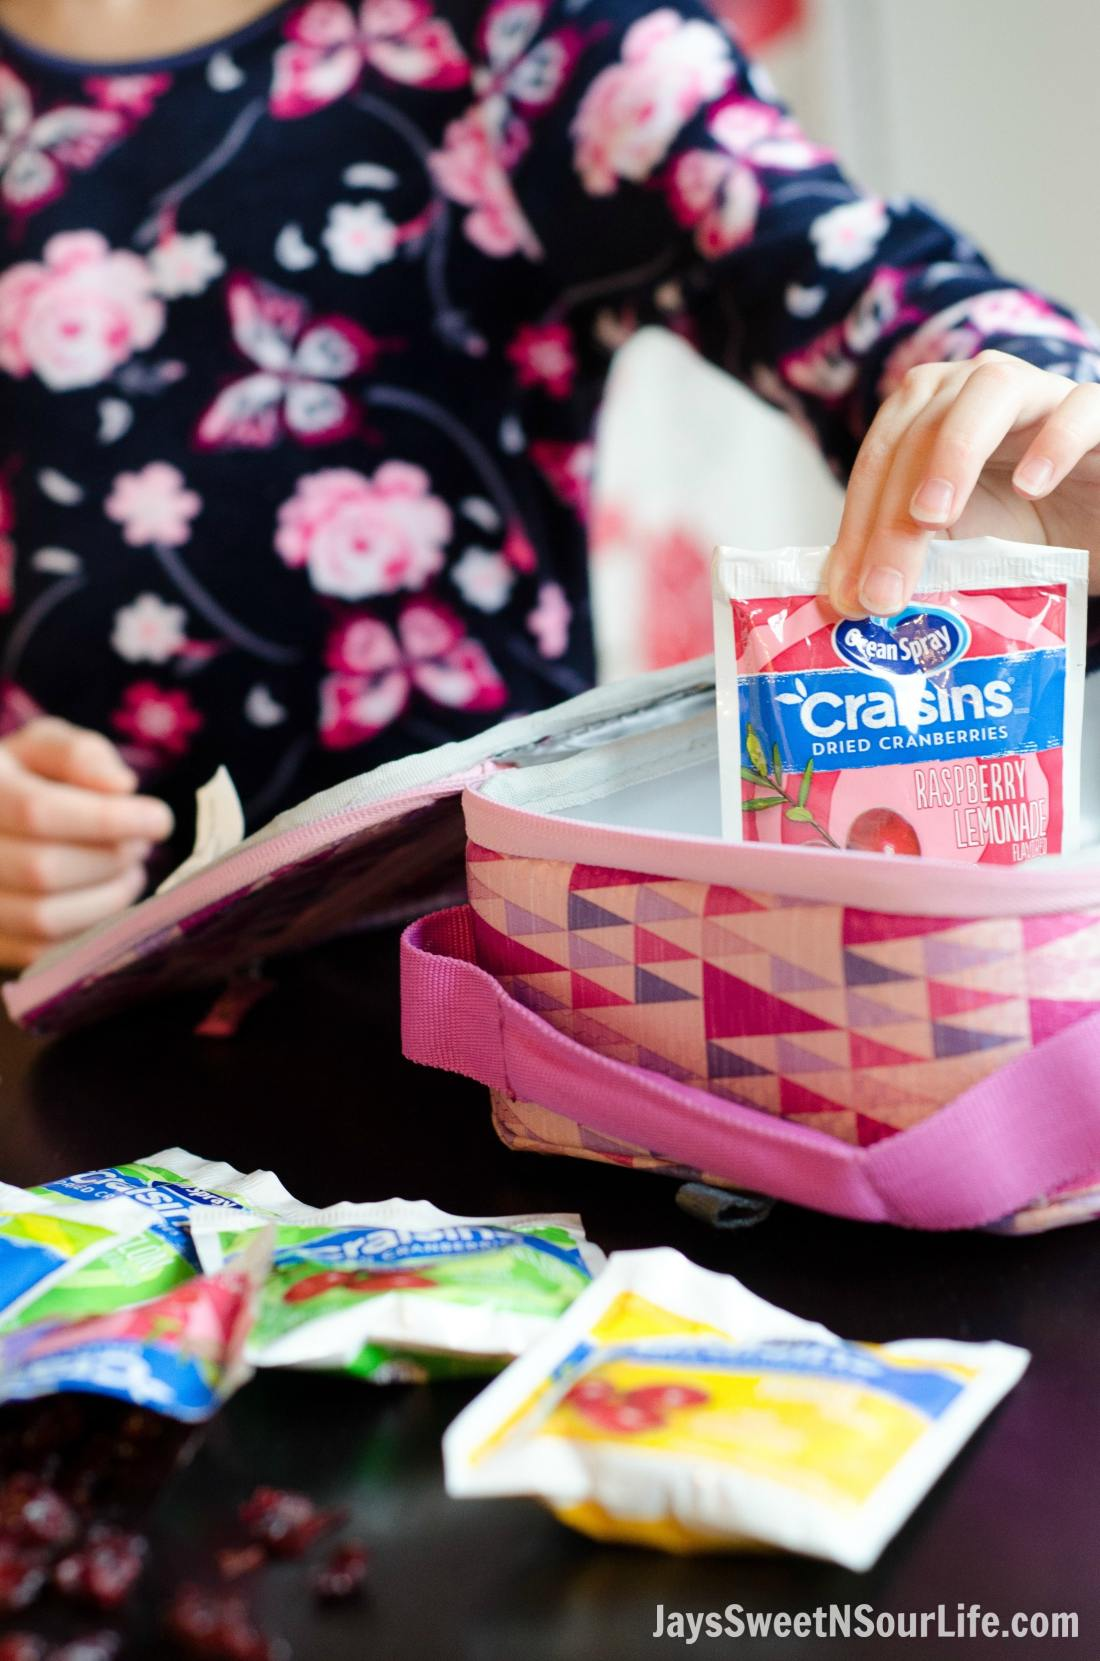 5 tips for the on the go mom. Little Girl Packing Ocean Spray Tropical and Fruit Splash flavored Craisins For school Lunch.